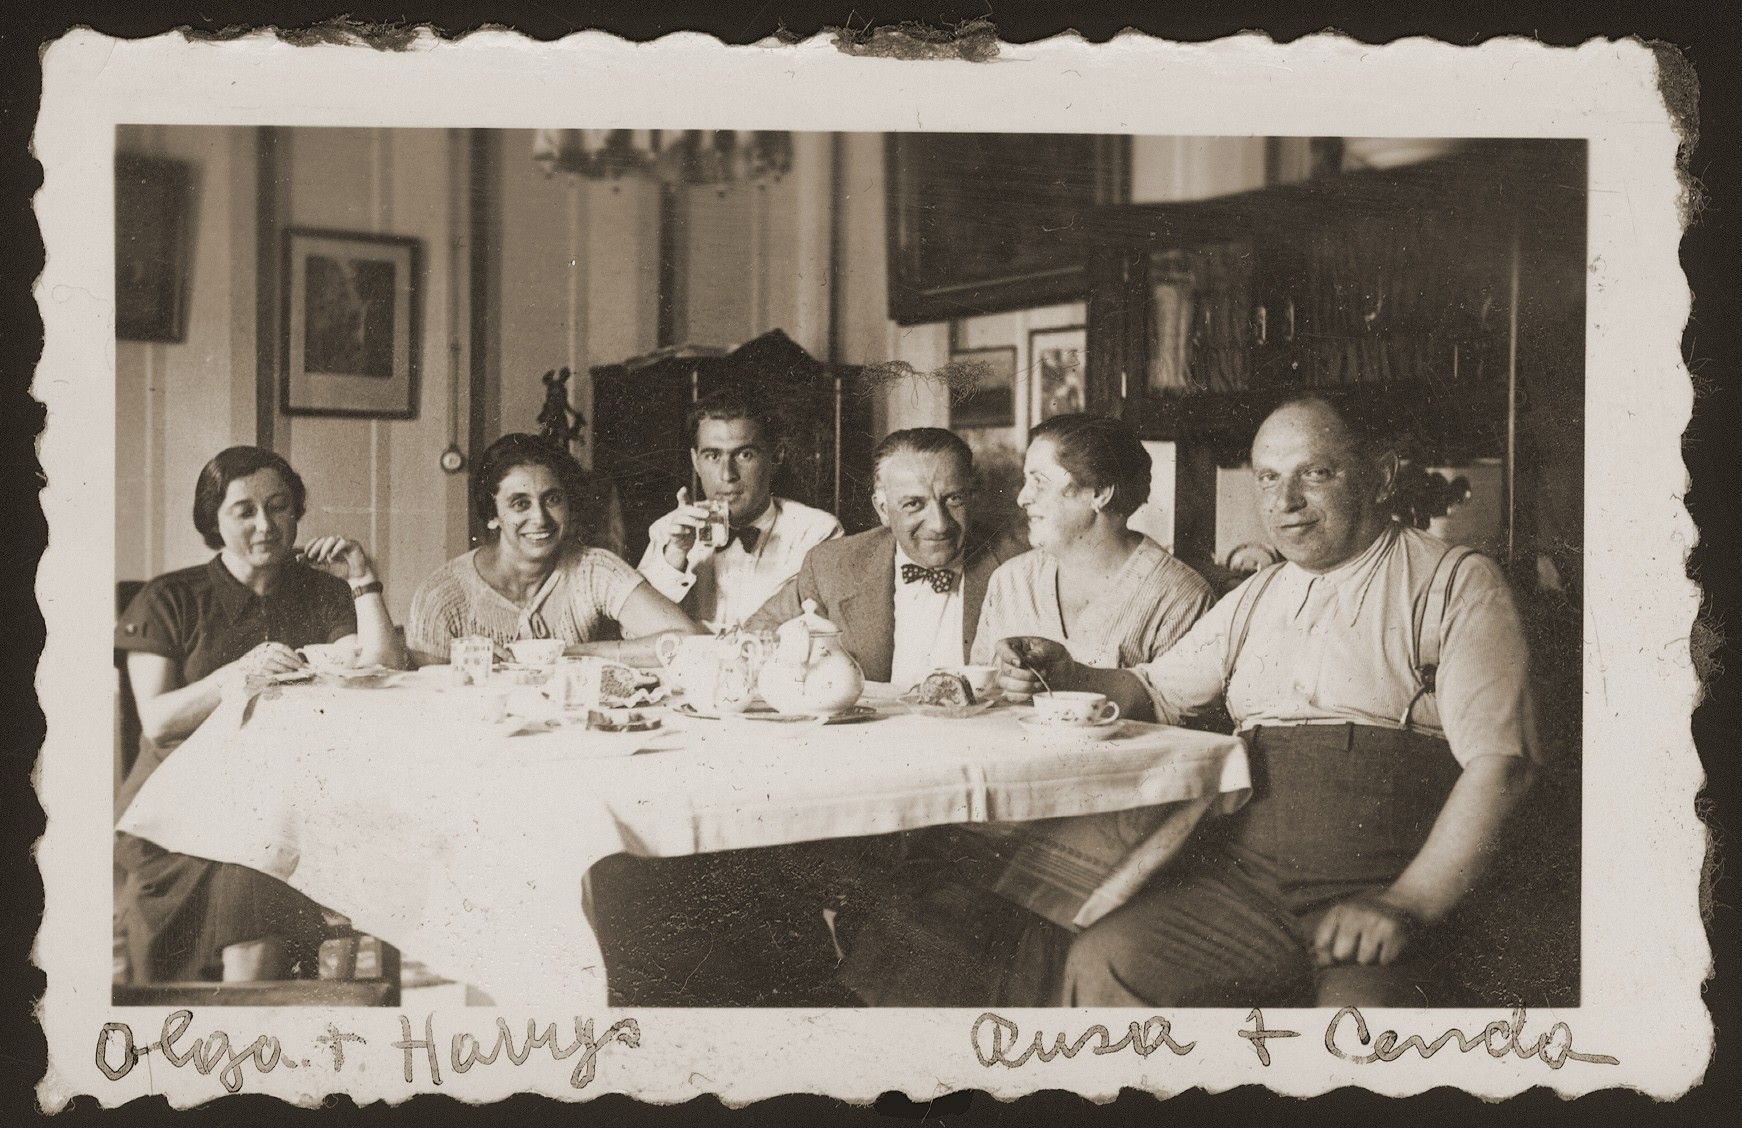 Engagement party for Herman Weigl and Olga Goldstein.    Pictured from right to left are Cenek and Ruzena (Goldstein) Lustig;, unknown; Herman; unknown; and Olga Goldstein.  Herman and Olga (Goldstein) Weigl (the donor's aunt) lived in Prague, where Herman worked as a dentist.  They had a son, Tomas (b. 1937).  All three perished during the war.